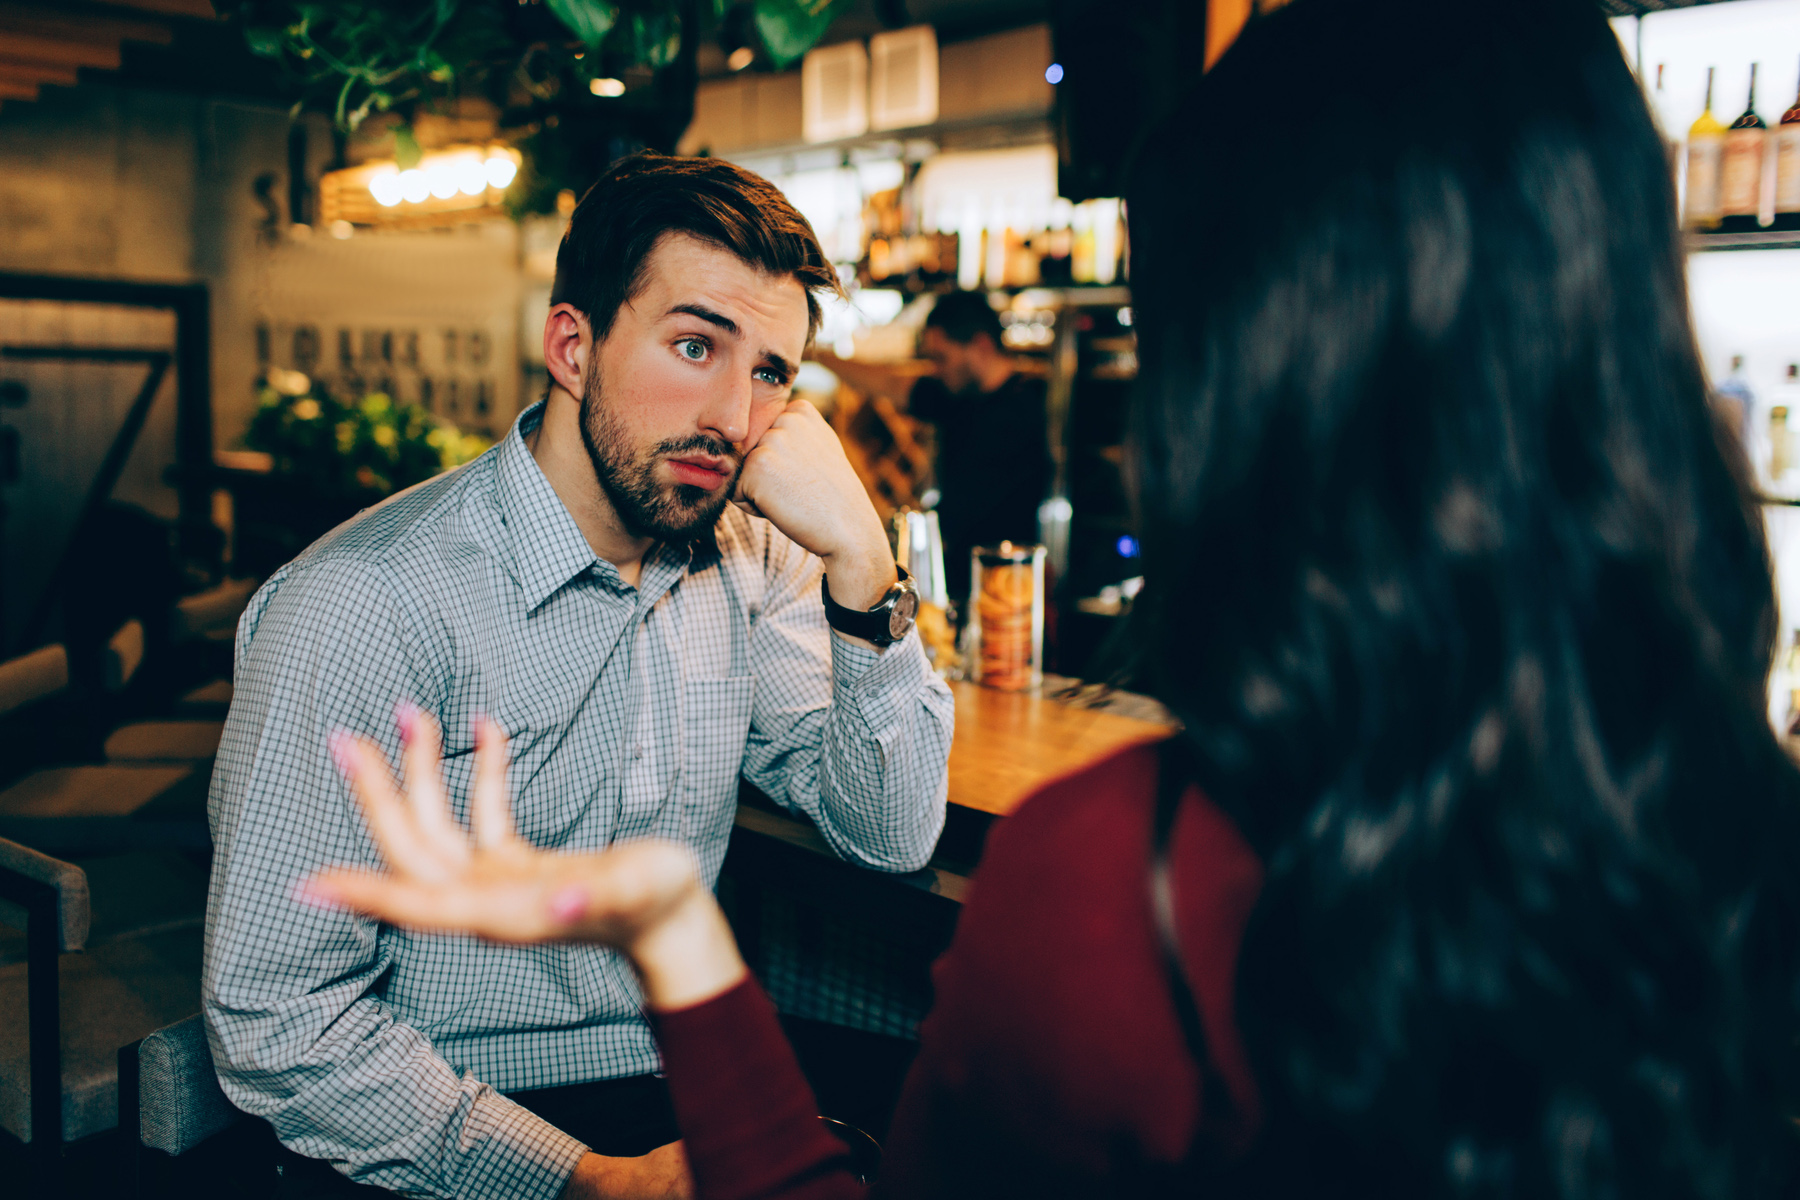 Man visibly bored on a date